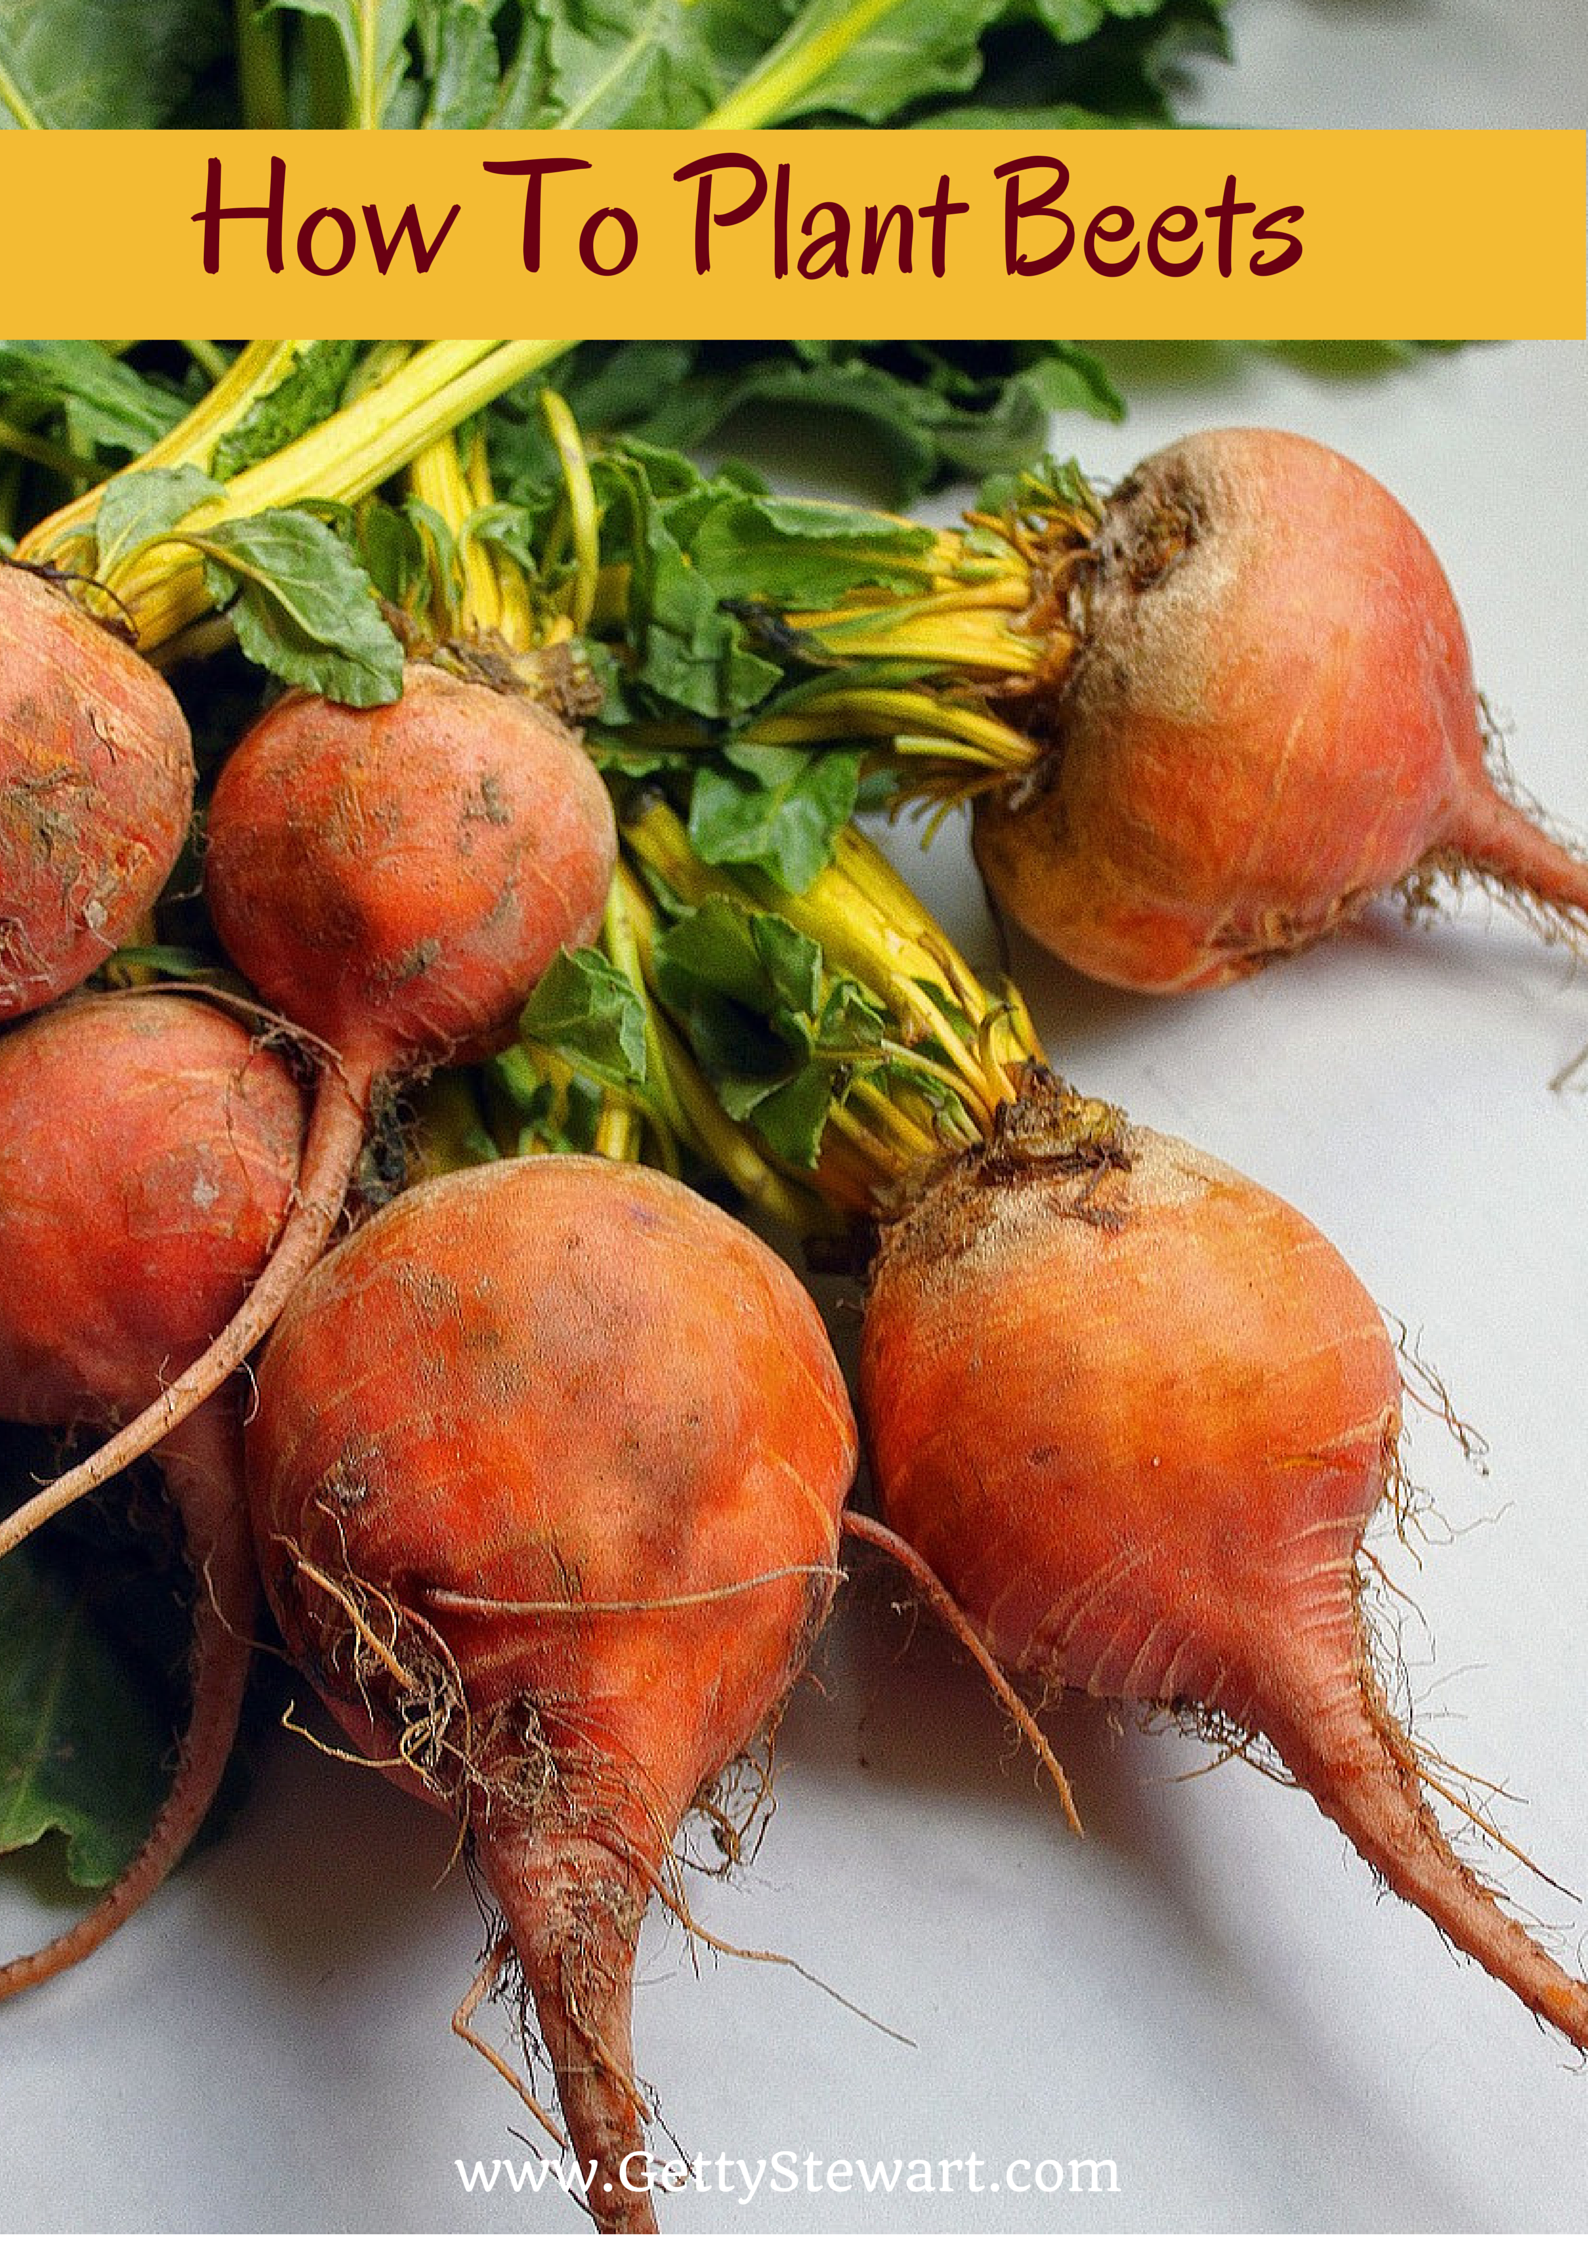 Getty Stewart How To Plant Beets In The Garden Growing Beets Vegetable Seed Organic Vegetables